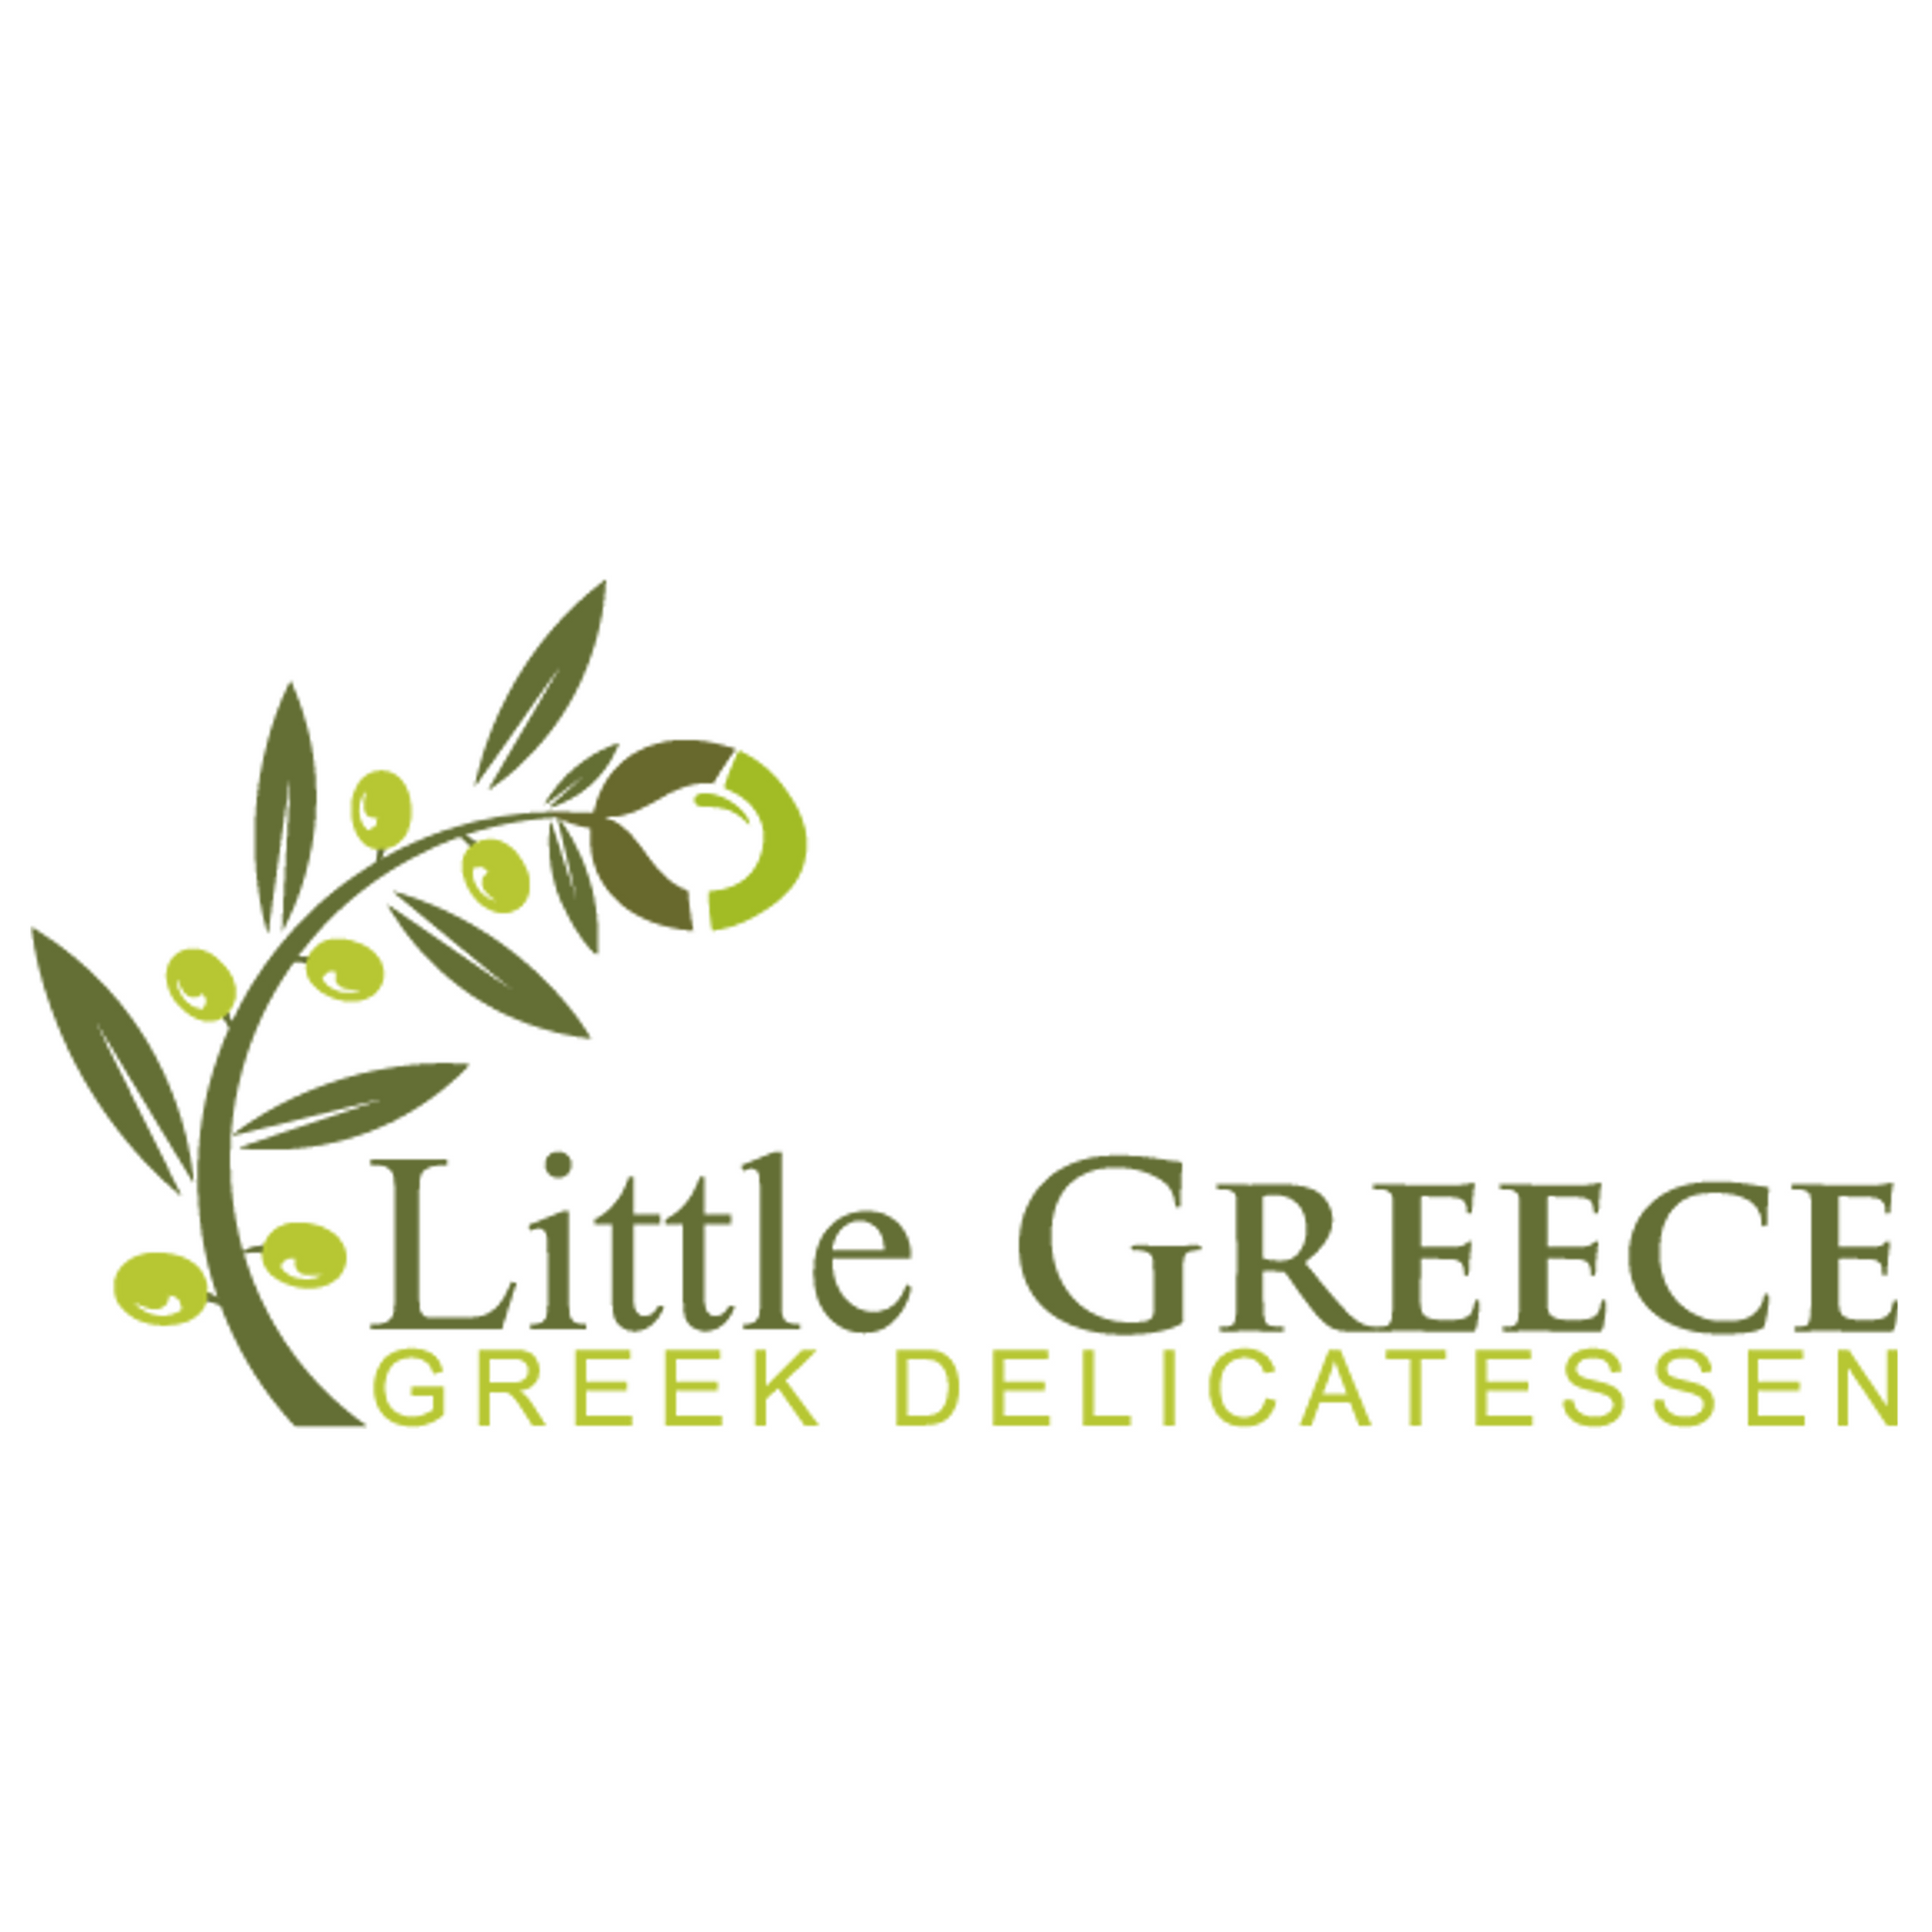 Little Greece Gift Voucher